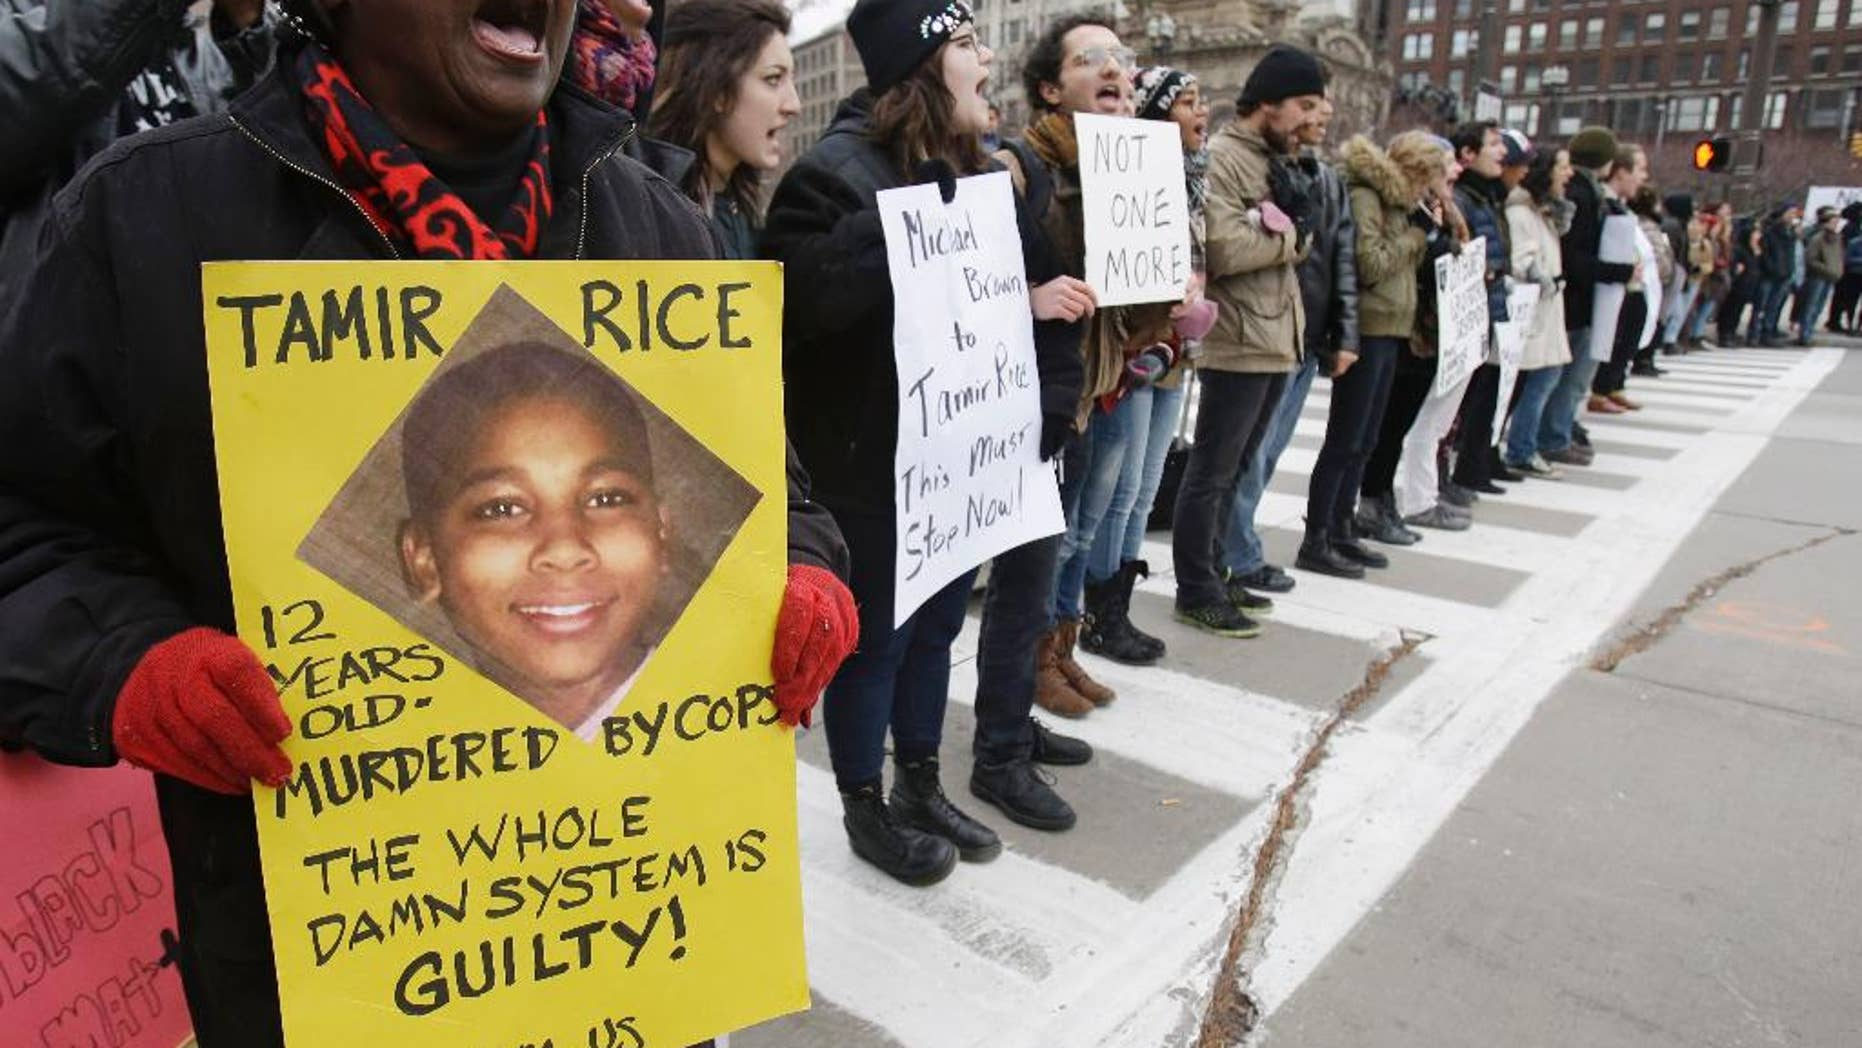 FILE- In this Nov. 25, 2014, file photo, demonstrators block Public Square Tuesday, Nov. 25, 2014, in Cleveland, during a protest over the police shooting of  12-year-old Tamir Rice. Cleveland's politicians and community leaders are now working to make sure protests remain peaceful as the city awaits a verdict in the trial of a white officer in the deaths of the two unarmed people and a decision on whether charges will be filed in Rice's death. (AP Photo/Tony Dejak, File)